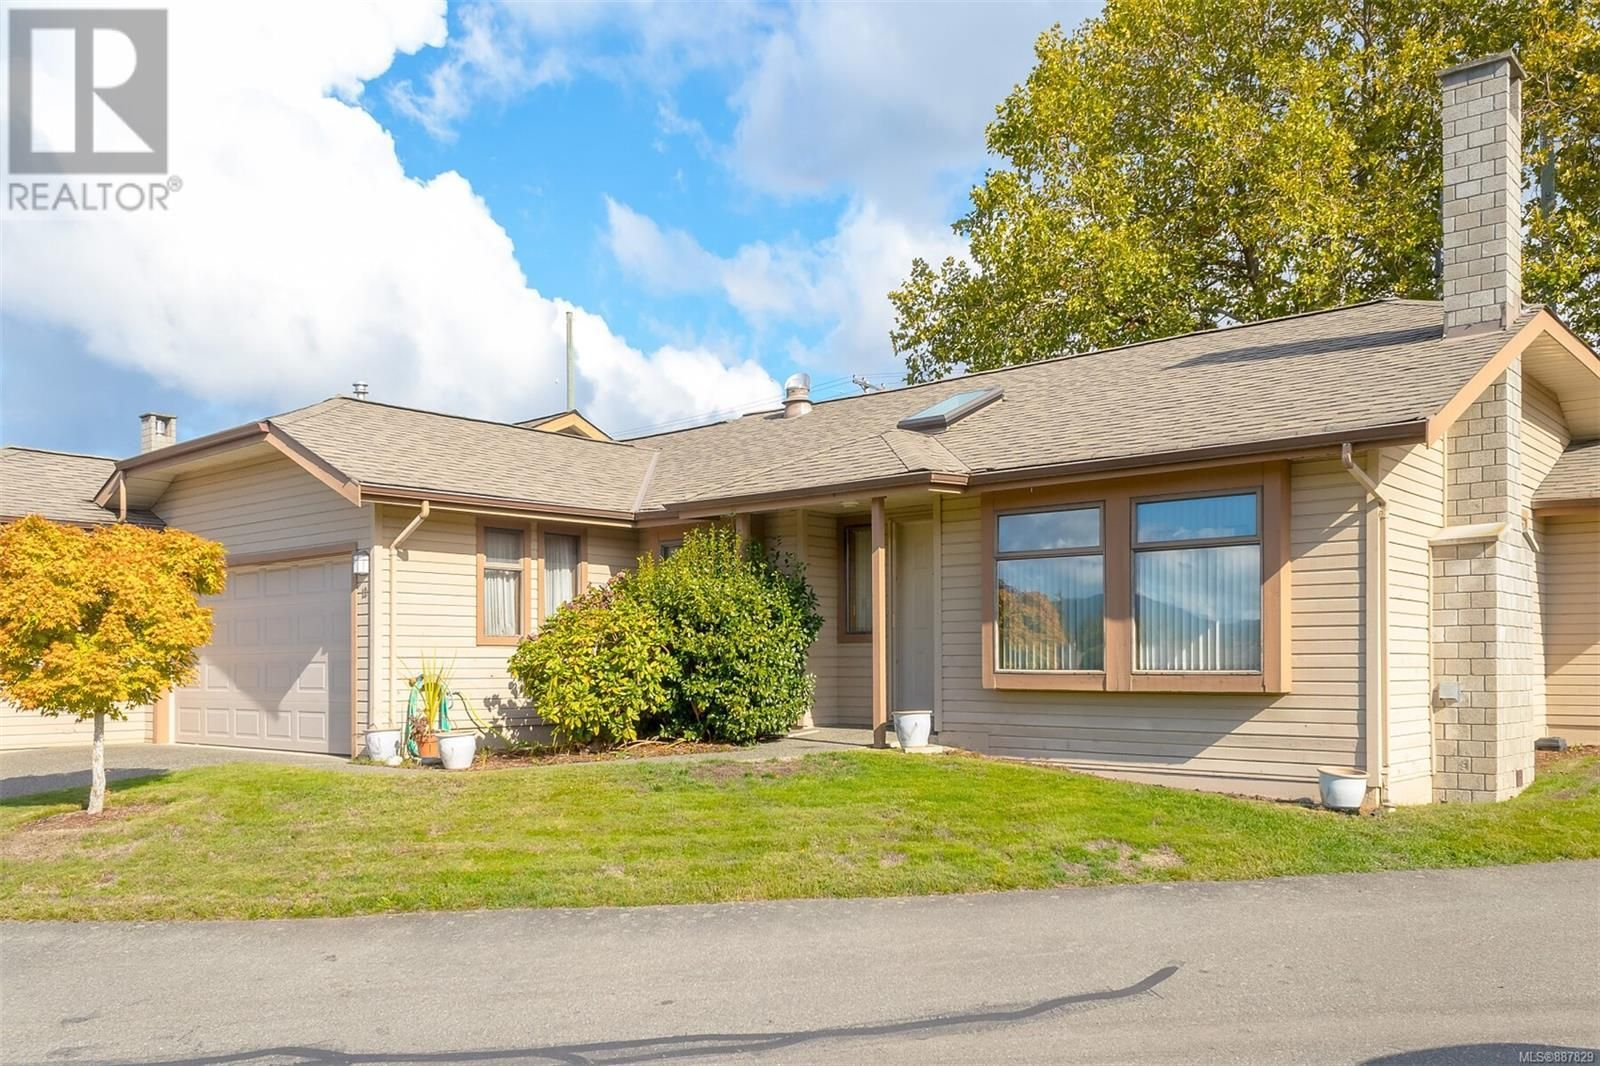 Main Photo: 13 1144 Verdier Ave in Central Saanich: House for sale : MLS®# 887829